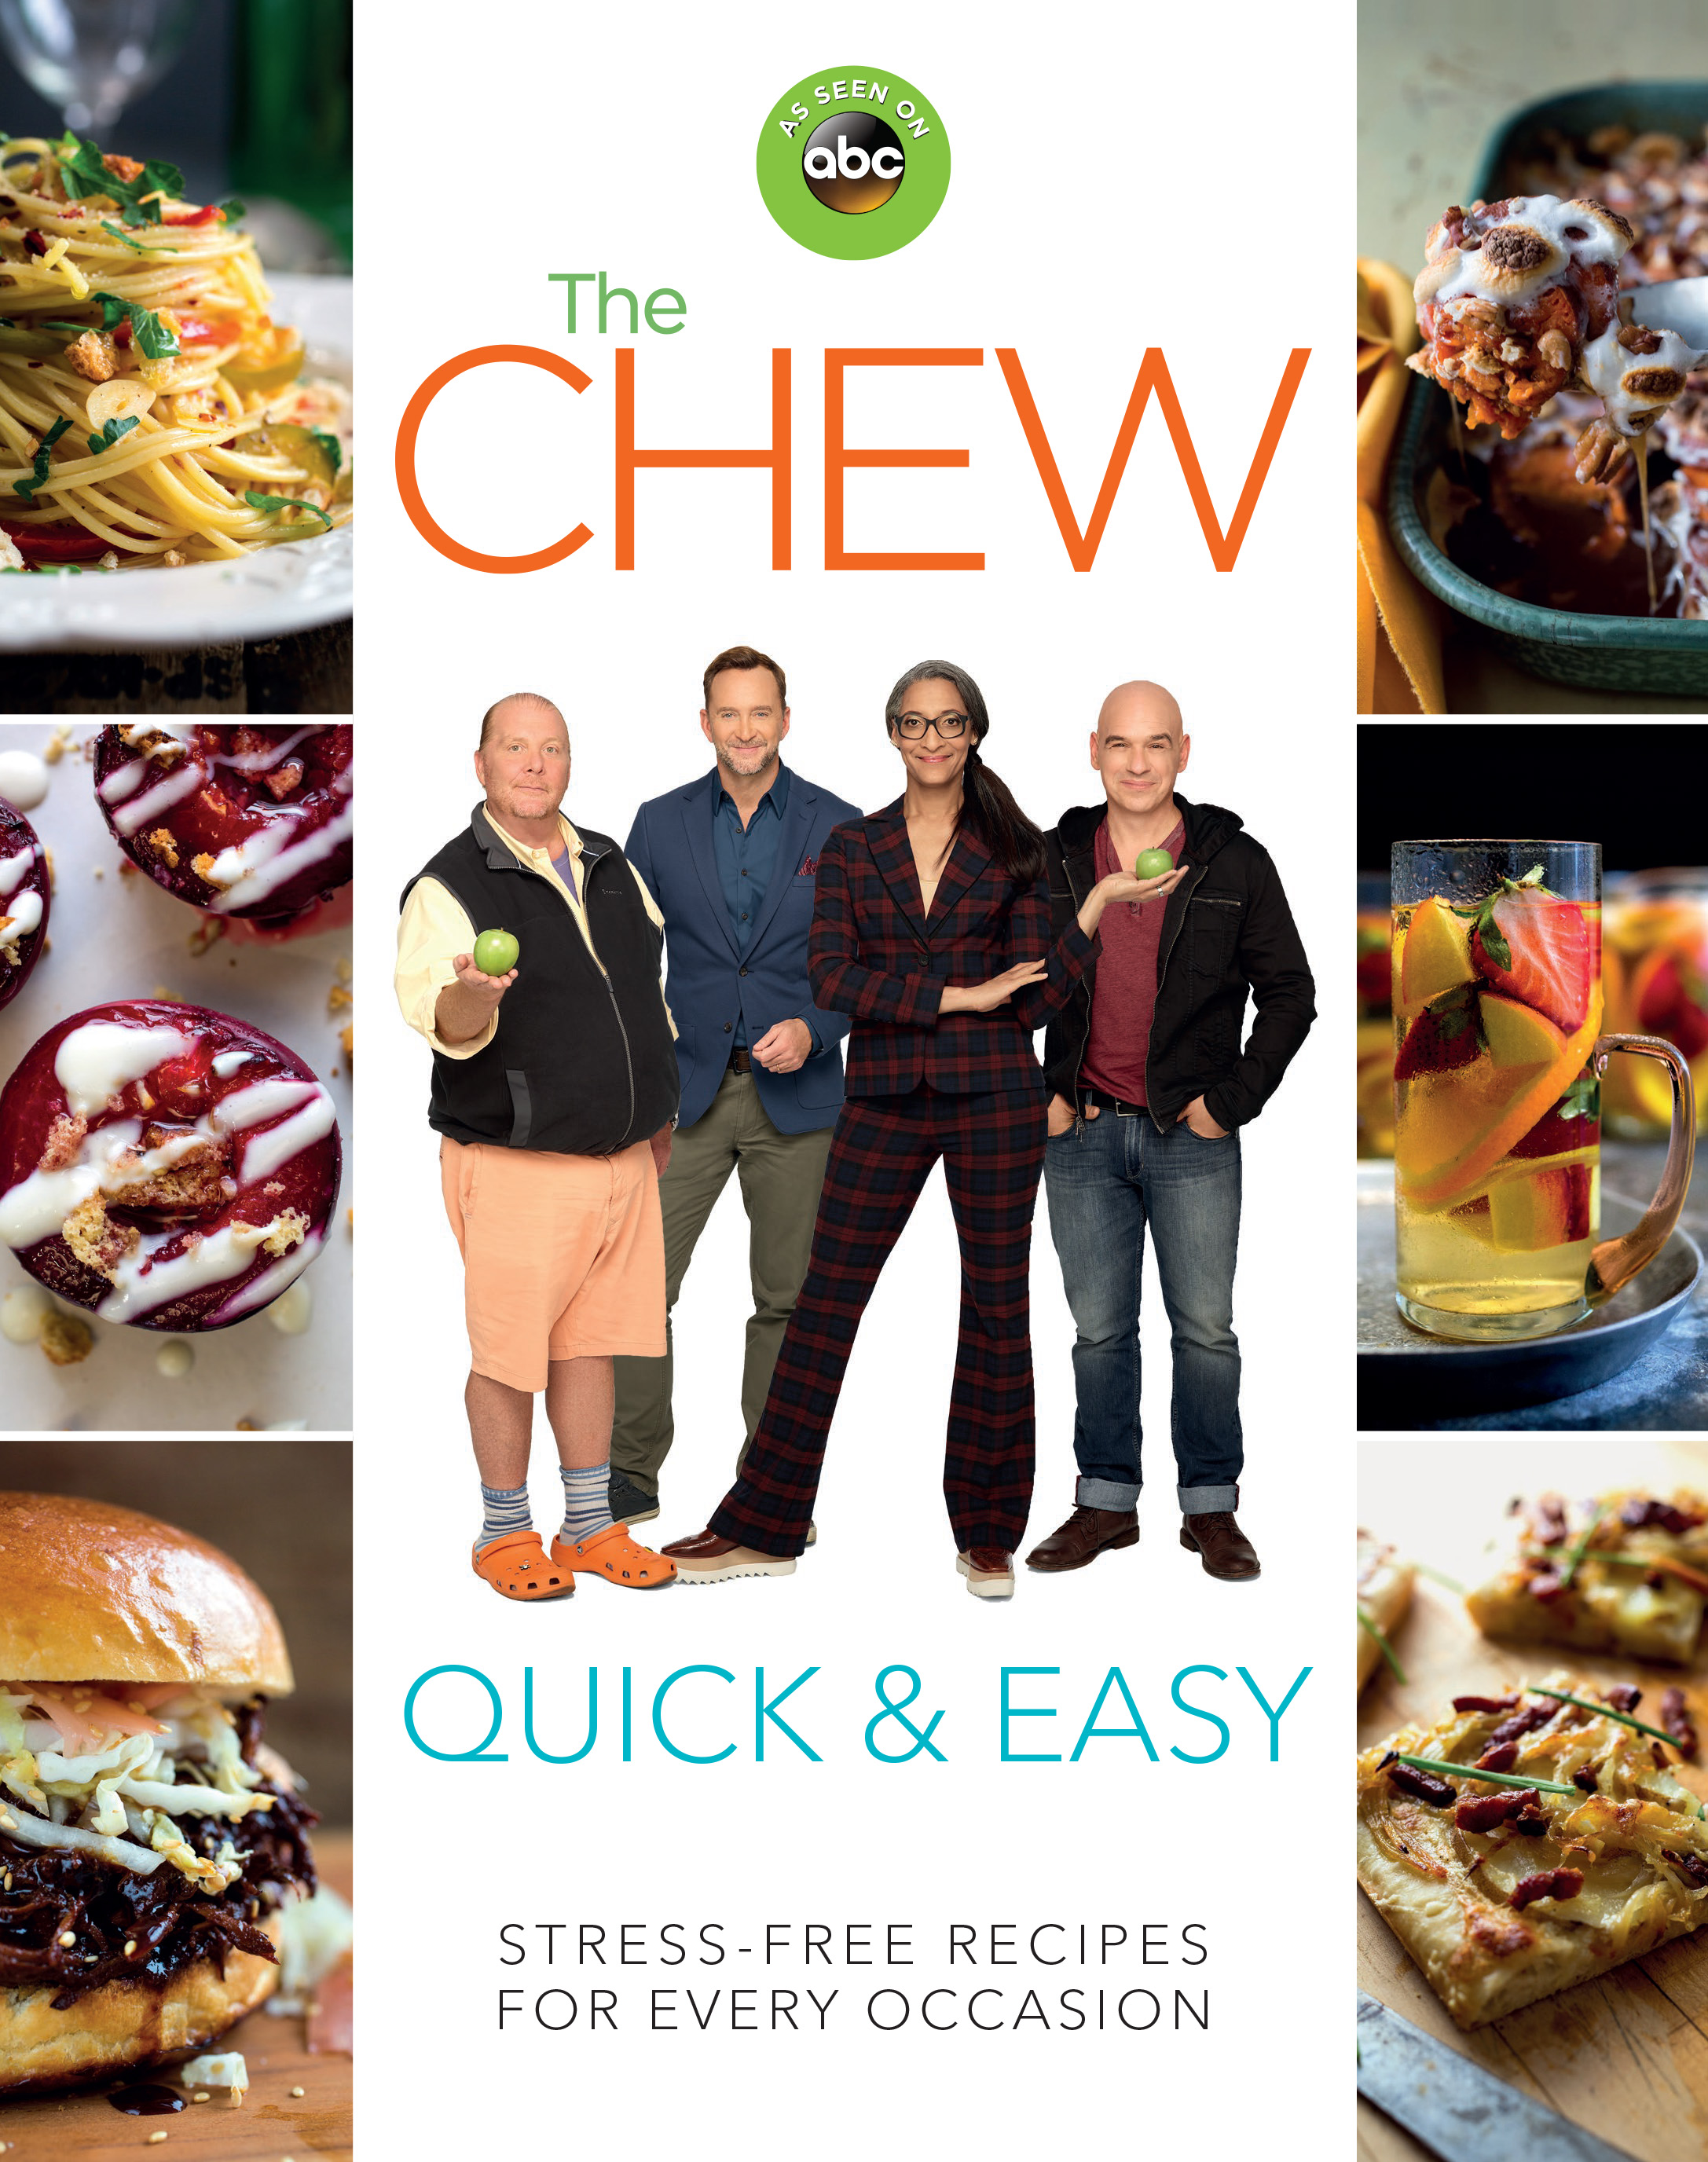 The Chew Quick & Easy